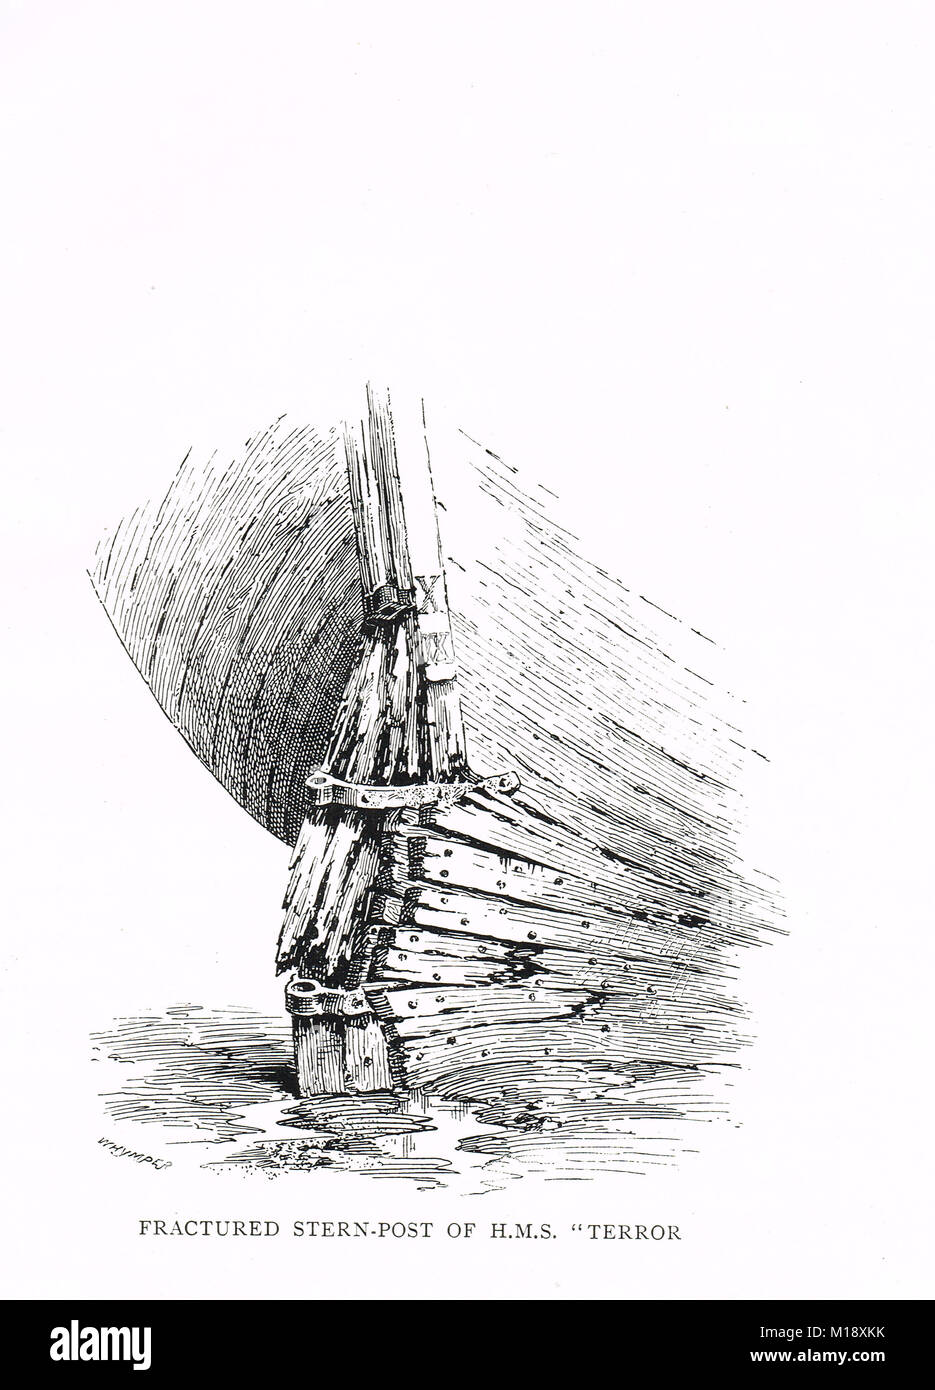 Fractured stern post of HMS Terror, trapped by Ice. Captain George Back's Arctic expedition to Hudson Bay, 1836 - Stock Image